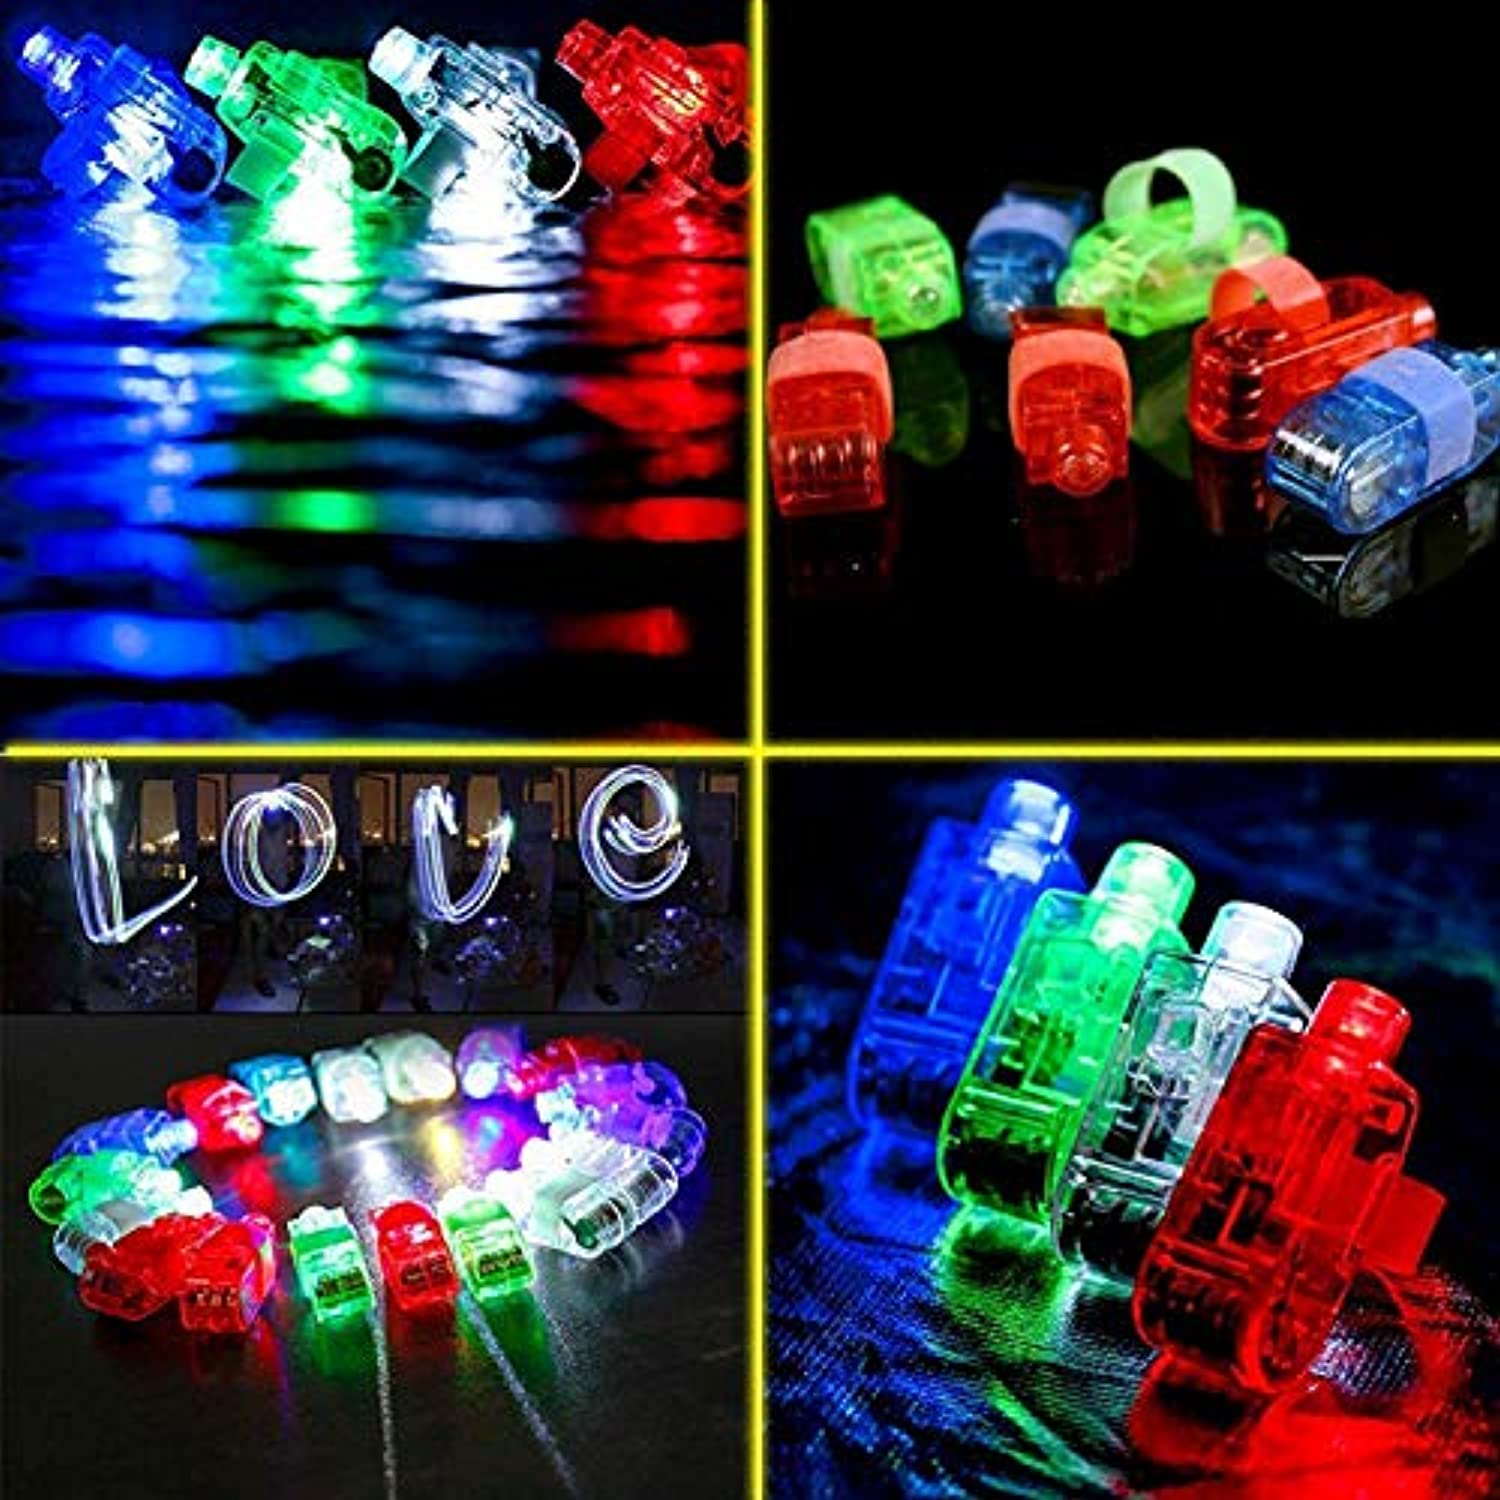 Classier: Buy MIBOTE MIBOTE 67 PCs LED Light Up Toys Party Favors Glow in the Dark Party Supplies for Kid/Adults with 40 Finger Lights, 10 Jelly Rings, 5 Flashing Glasses, 4 Bracelets, 4 Fiber Optic Hair Lights and 4 Crystal Necklaces